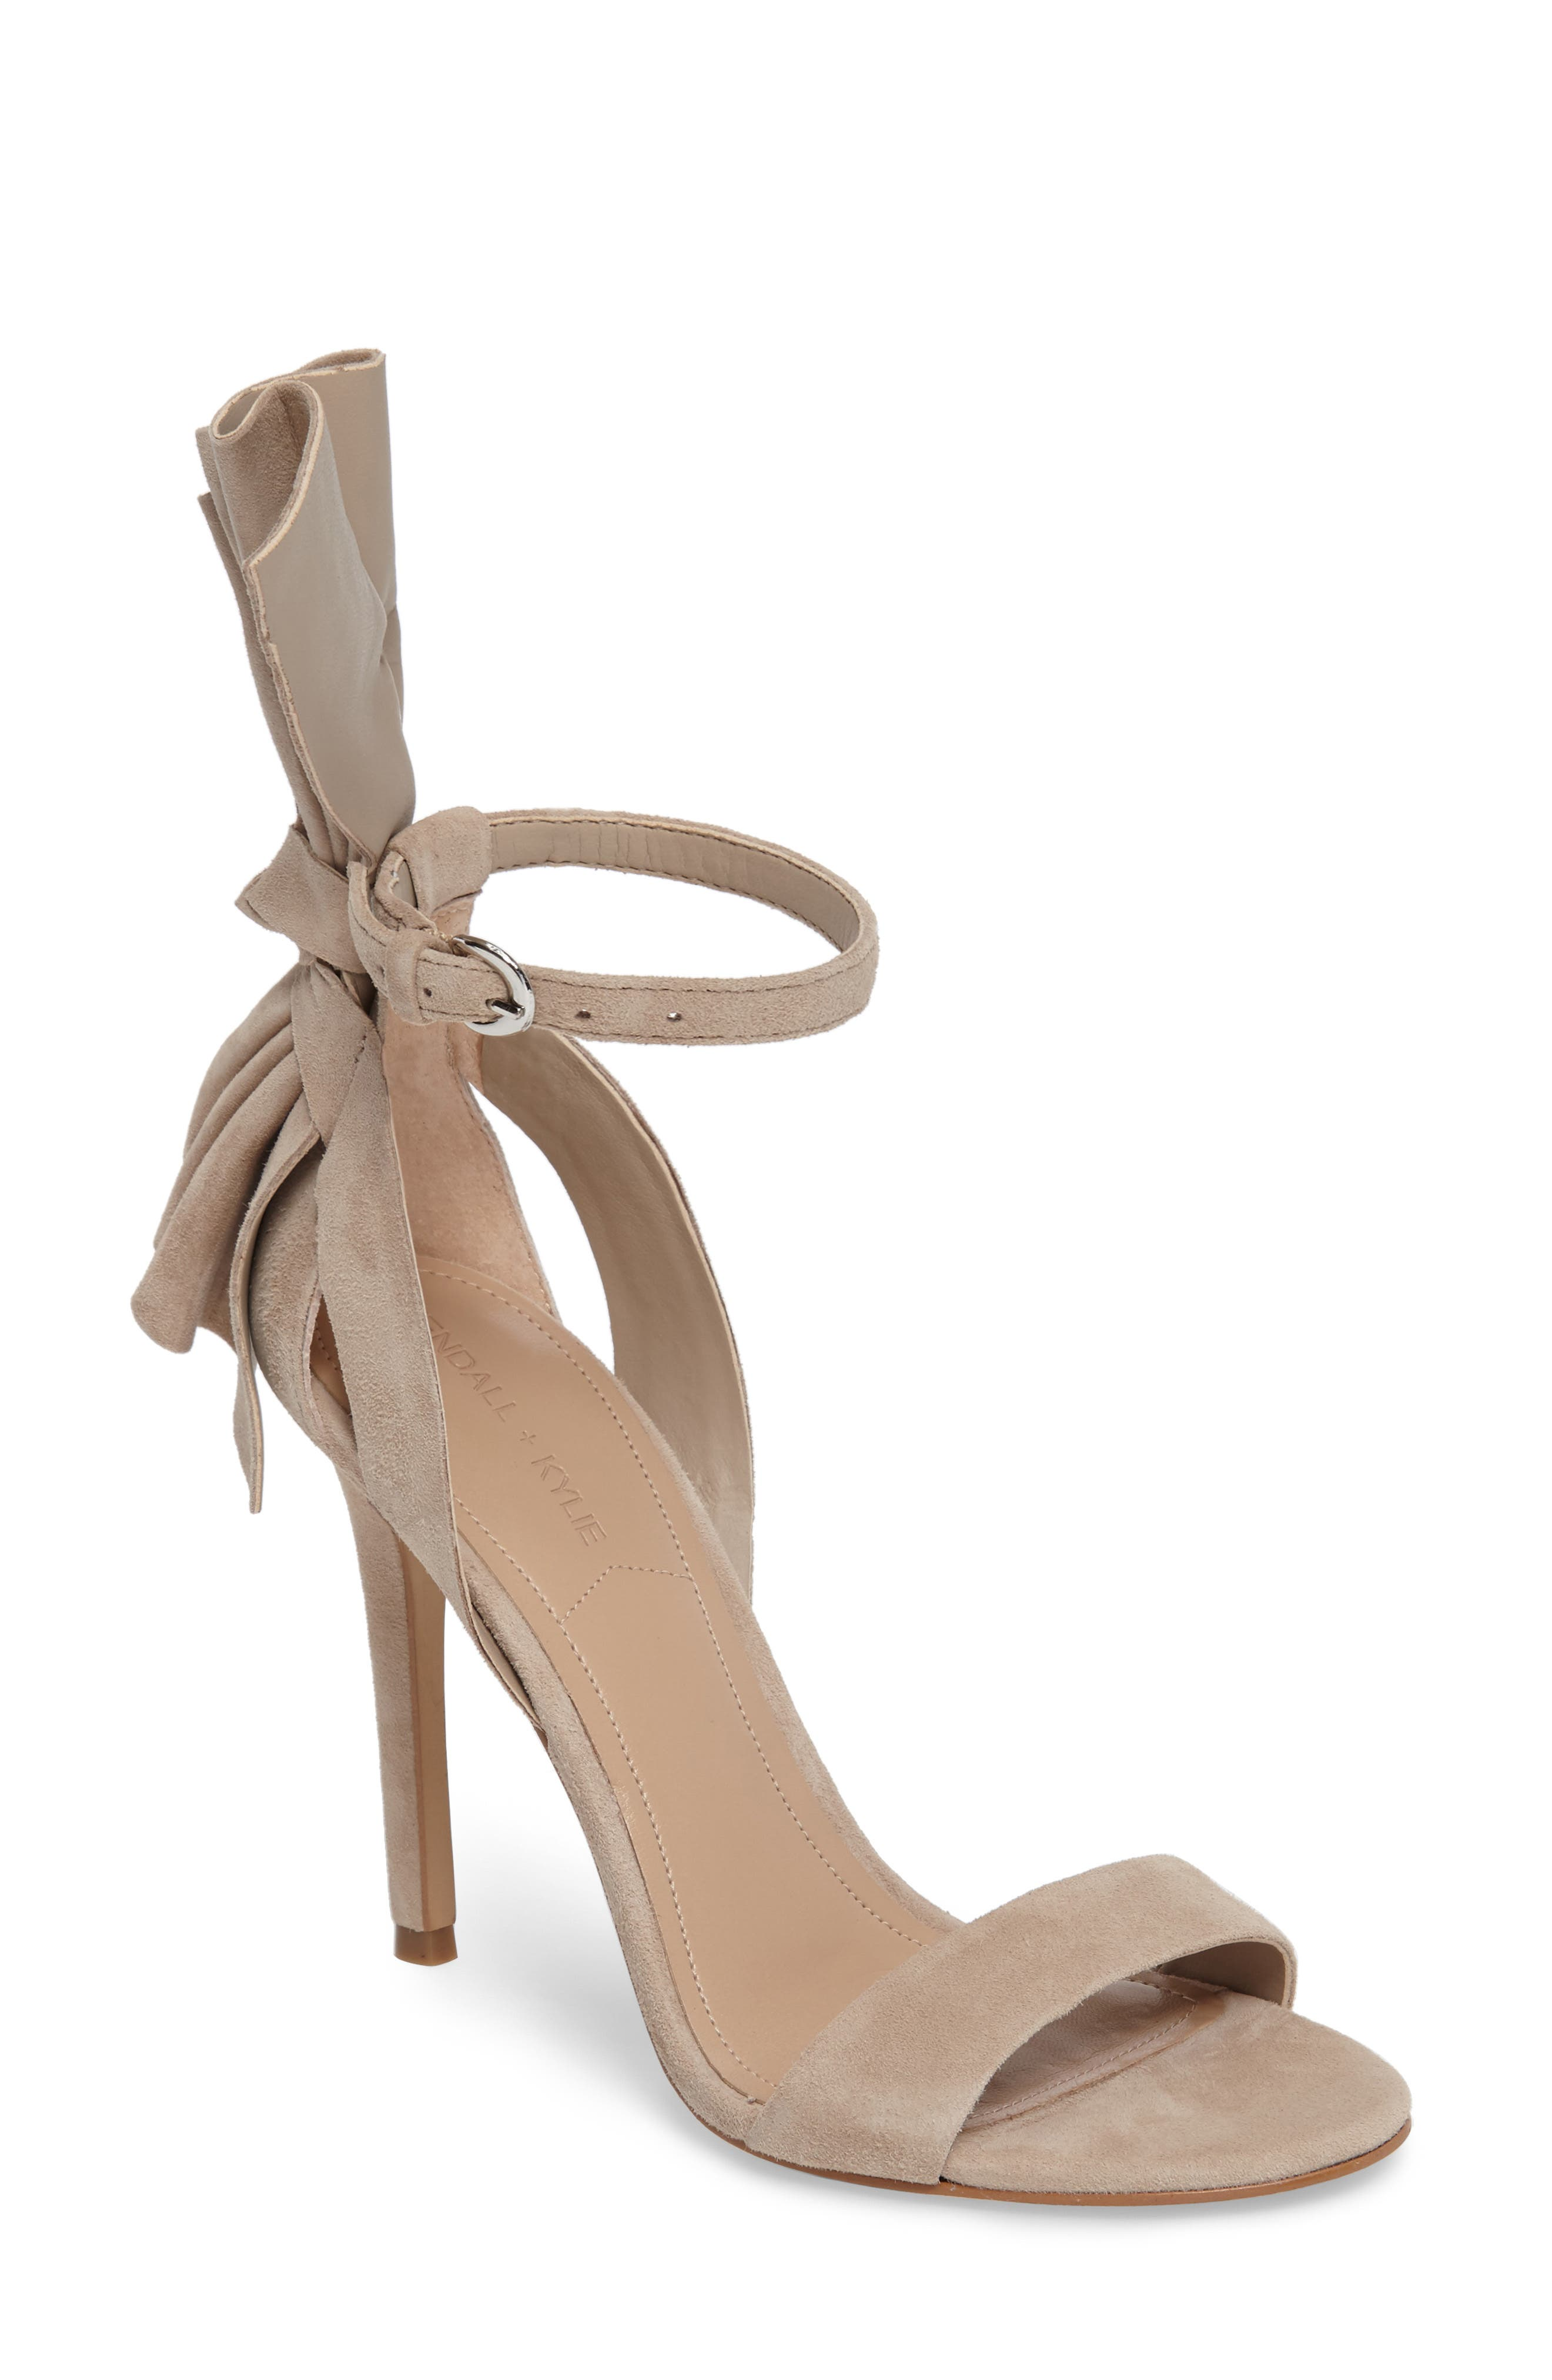 Alternate Image 1 Selected - KENDALL + KYLIE Eve Ankle Strap Sandal (Women)